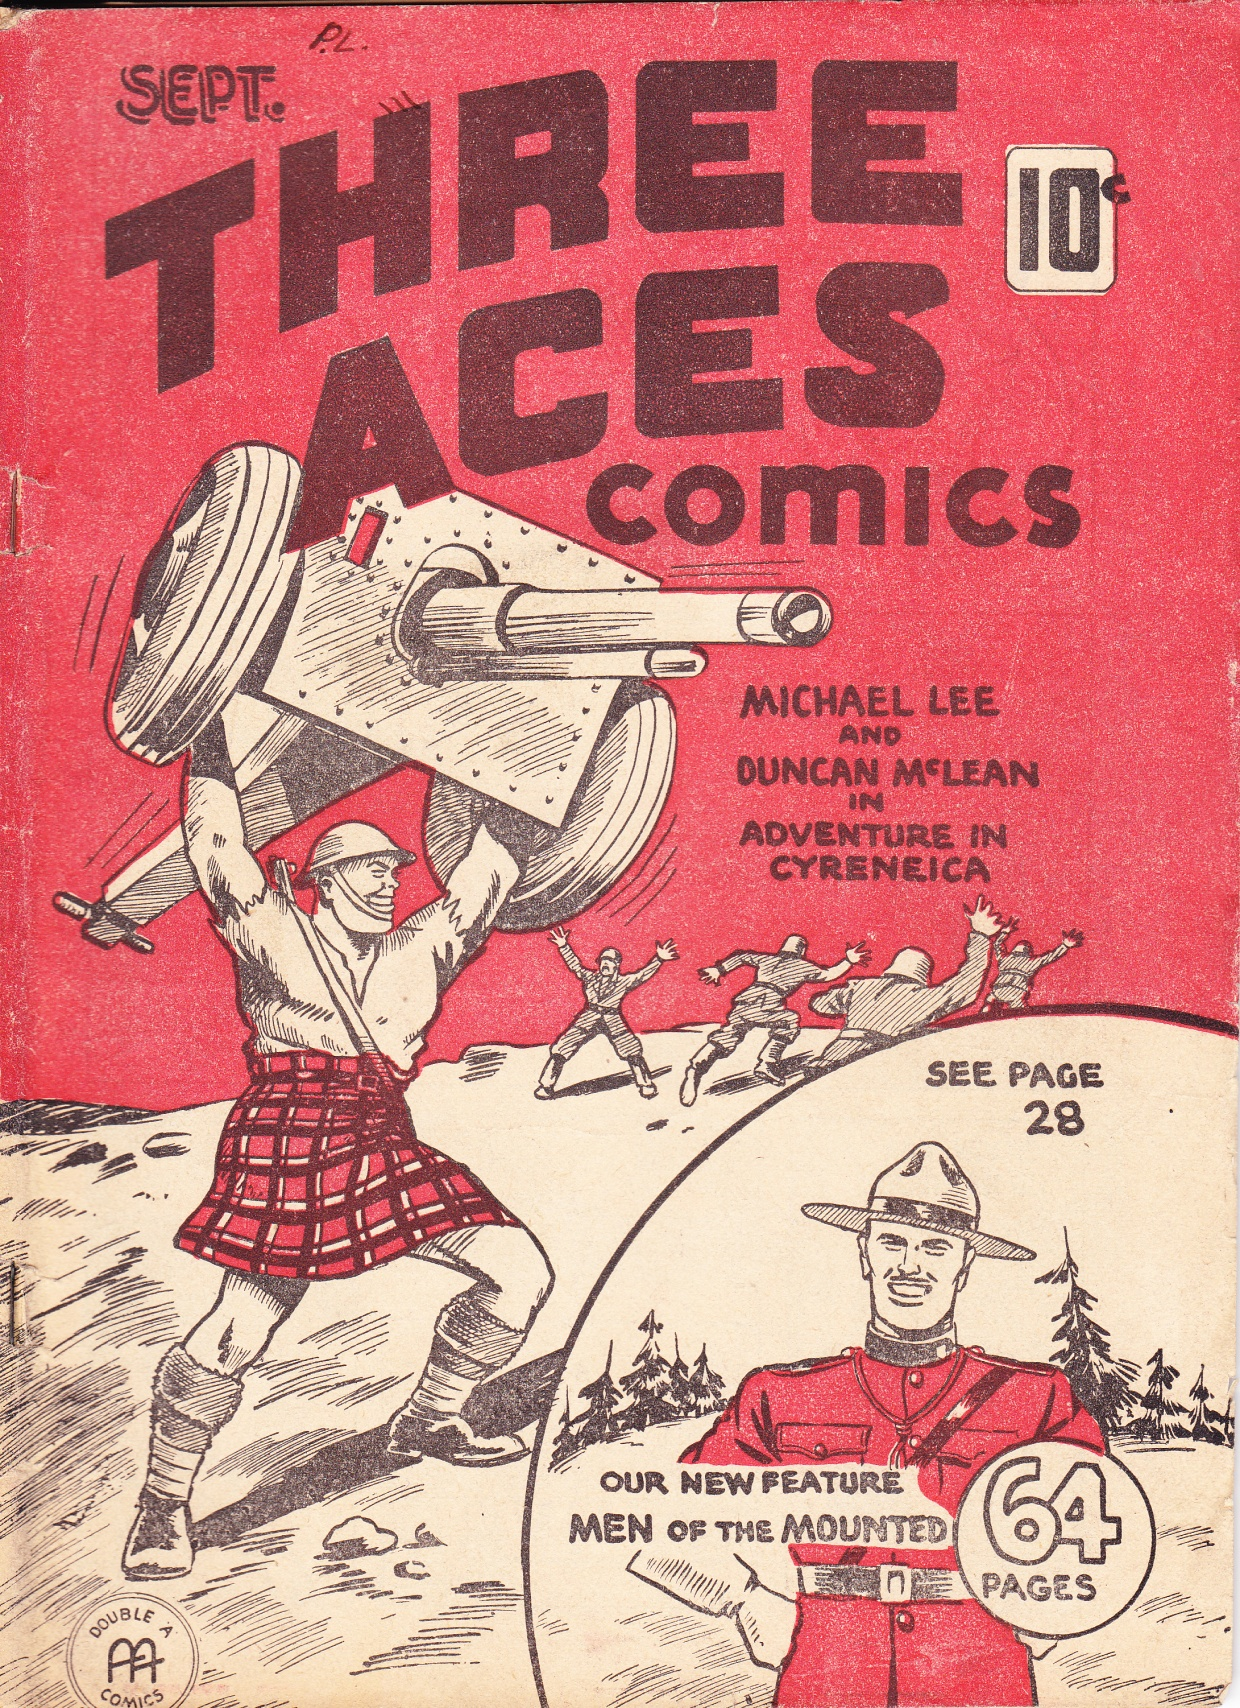 C:\Users\Robert\Documents\CARTOONING ILLUSTRATION ANIMATION\IMAGE CARTOON\IMAGE CARTOON M\MICHAEL LEE, Three Aces, 1-8, J-F 1942, fc.jpg